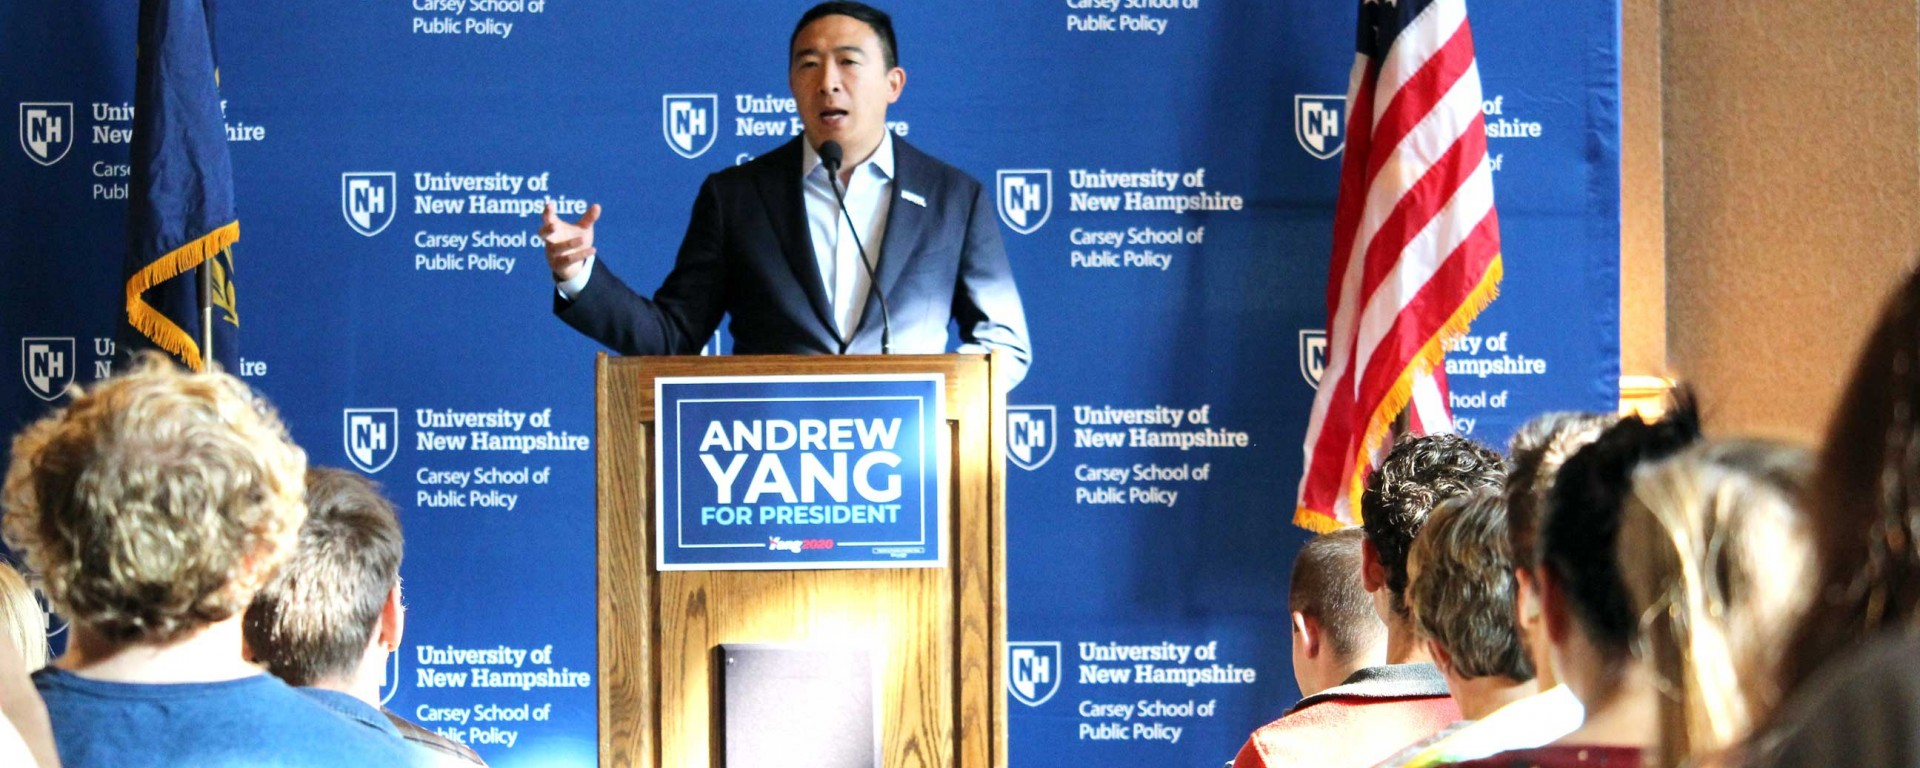 Andrew Yang speaking at the Carsey School of Public Policy.